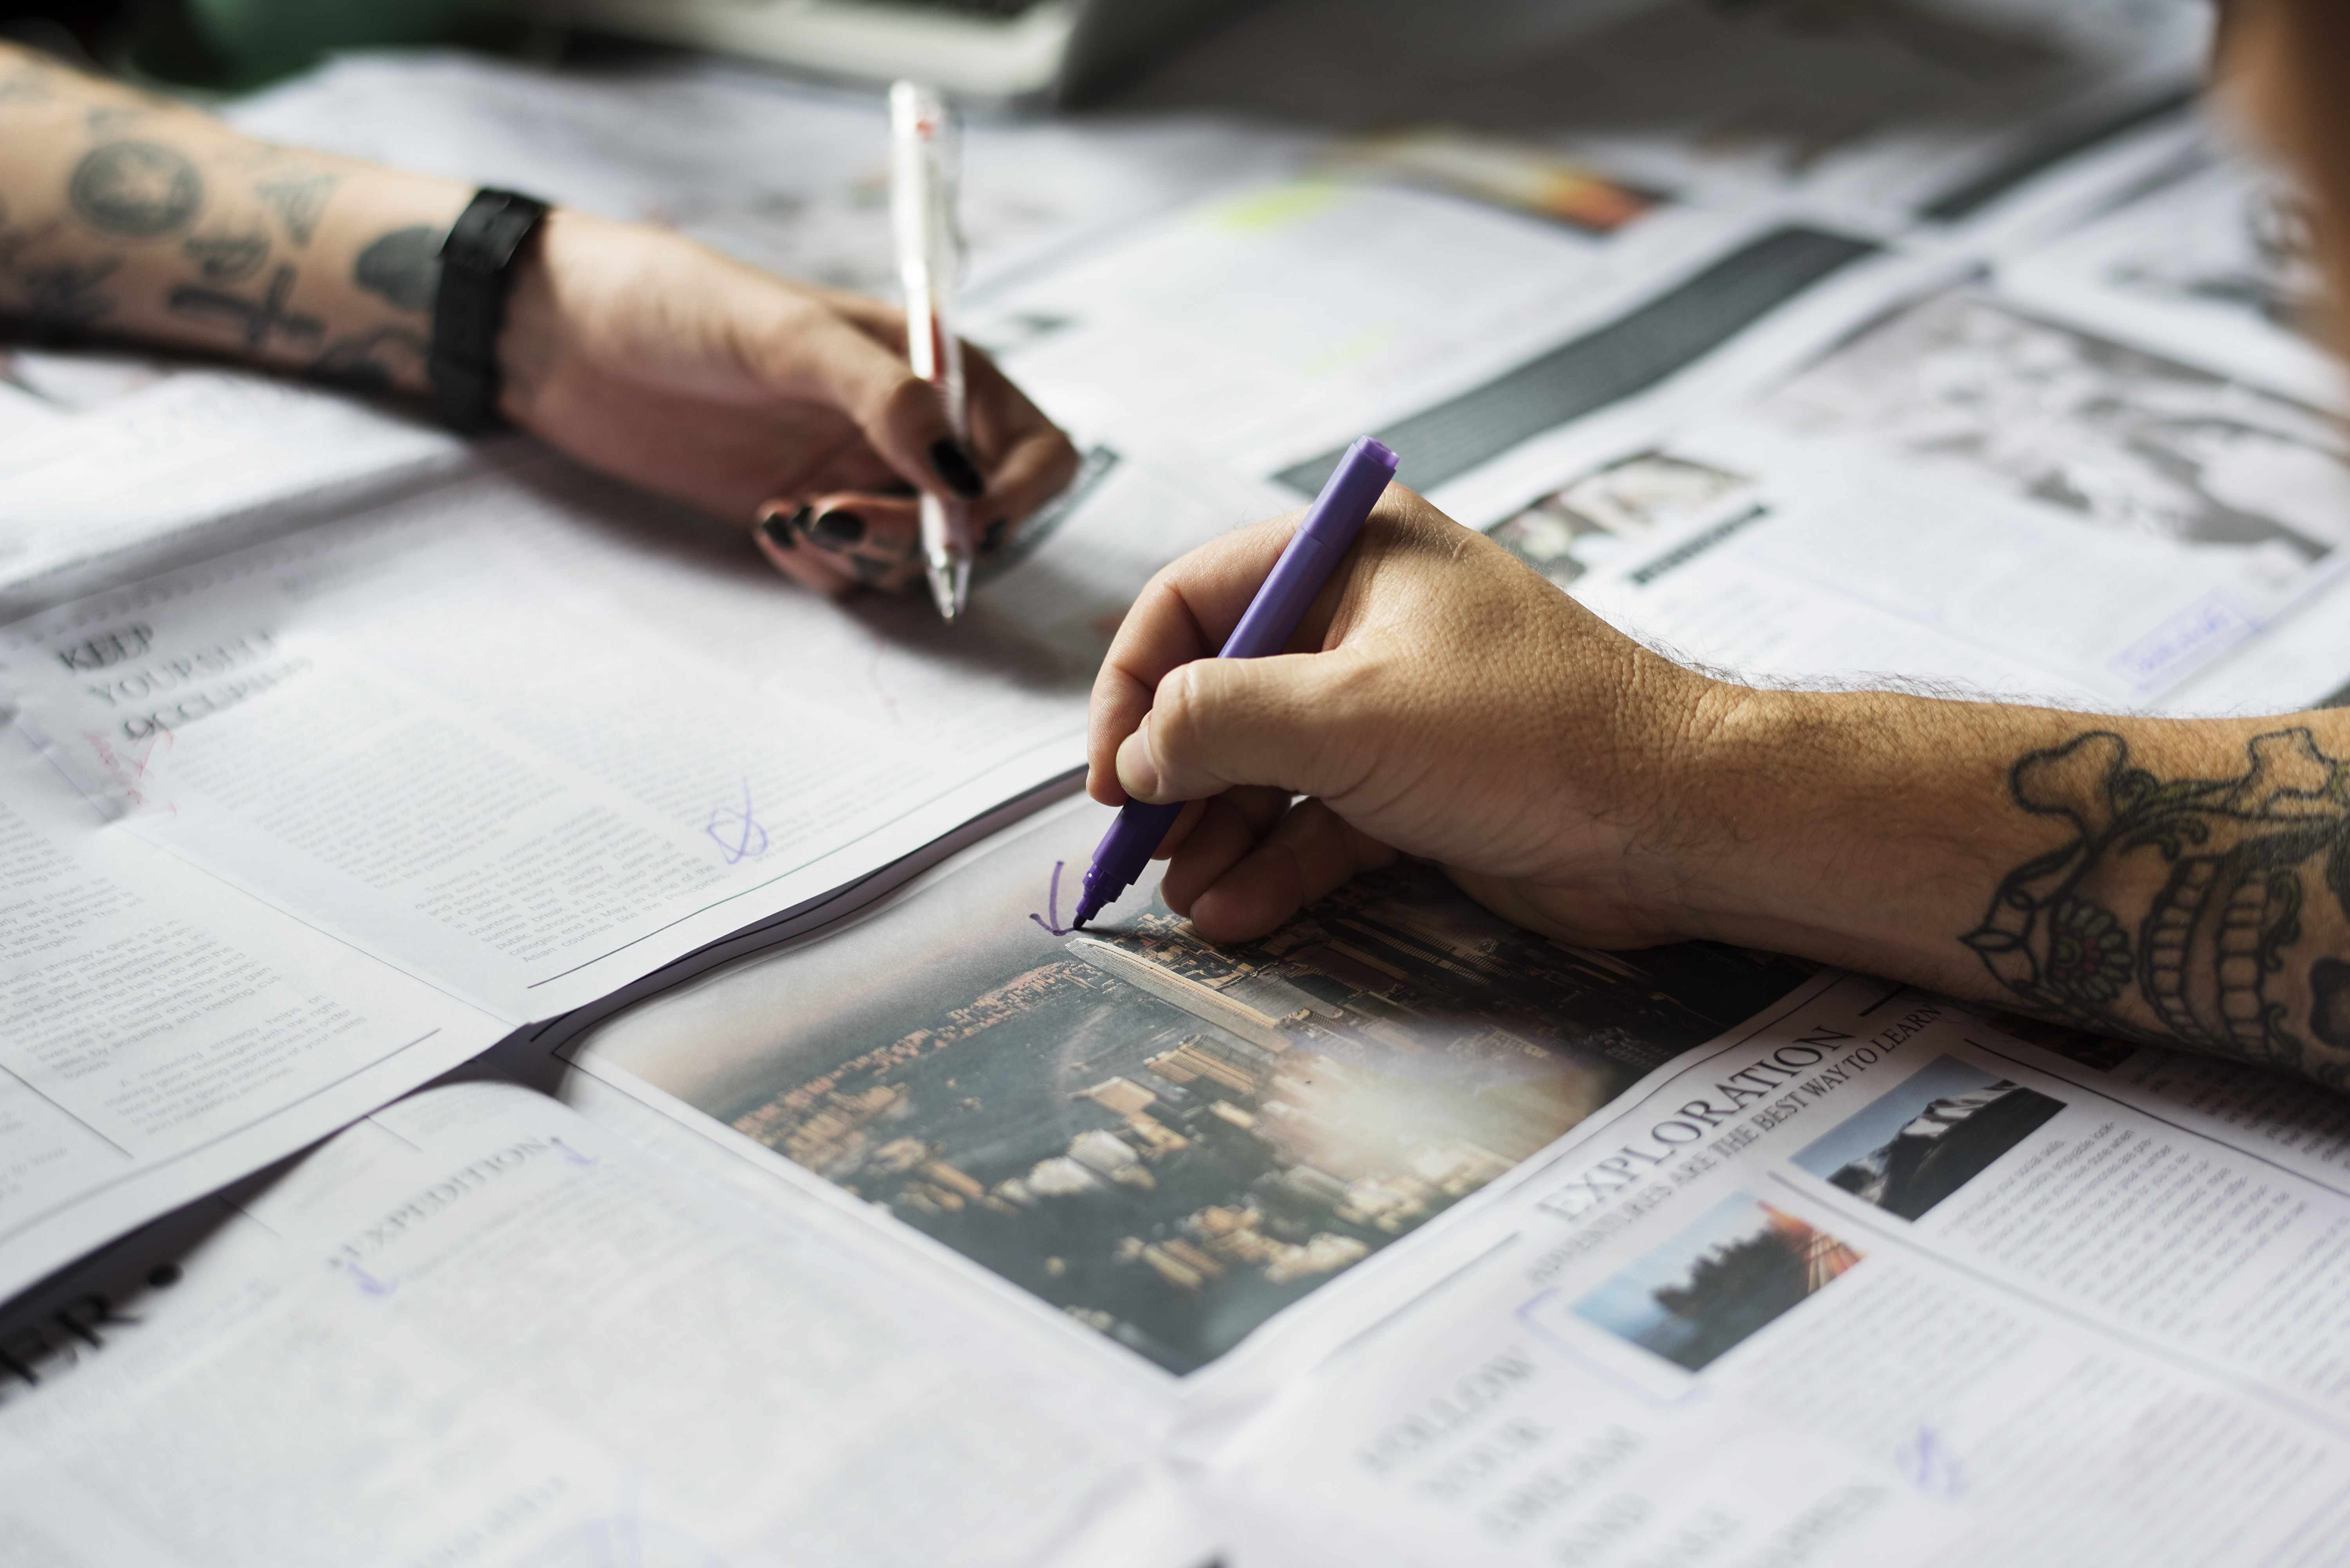 person holding marker writing on newspaper